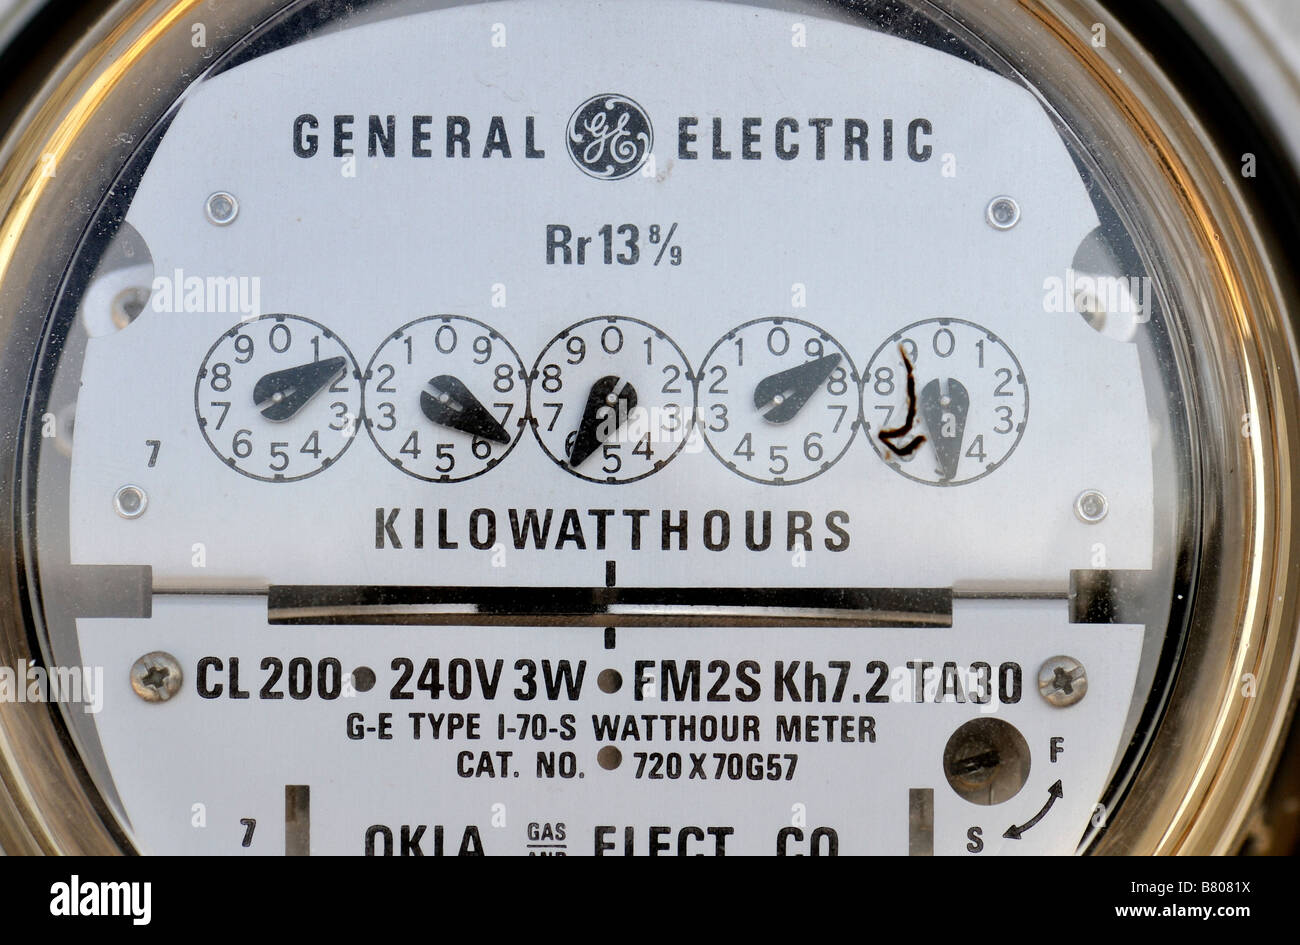 Closeup view of a residential electrical meter. Oklahoma, USA. - Stock Image